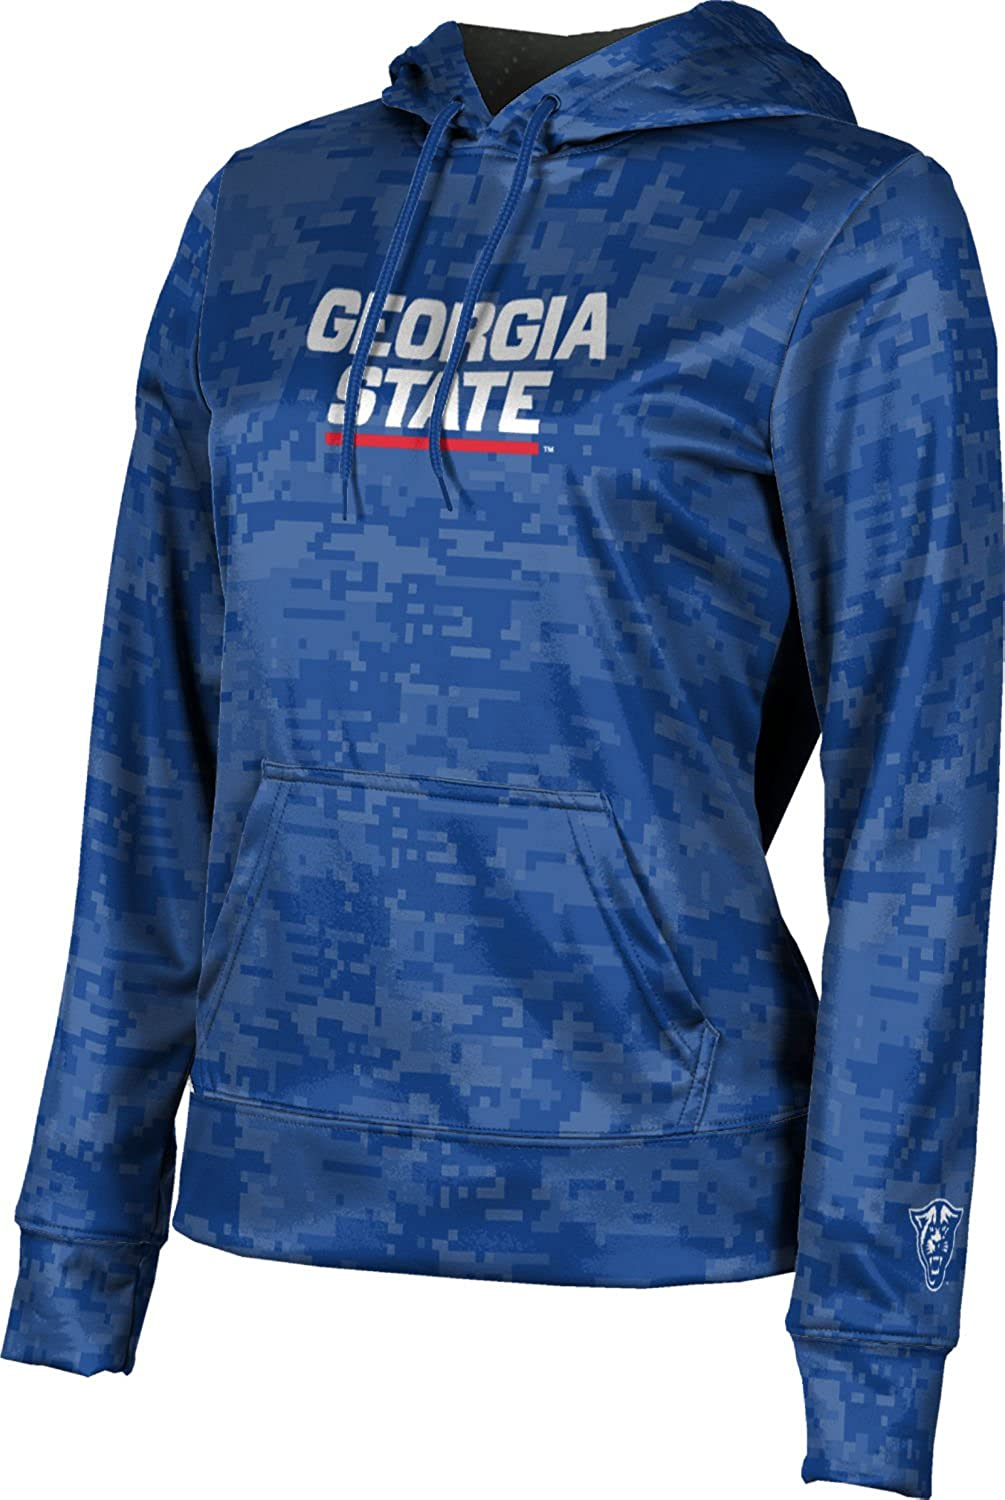 Digi Camo School Spirit Sweatshirt Georgia State University Girls Pullover Hoodie